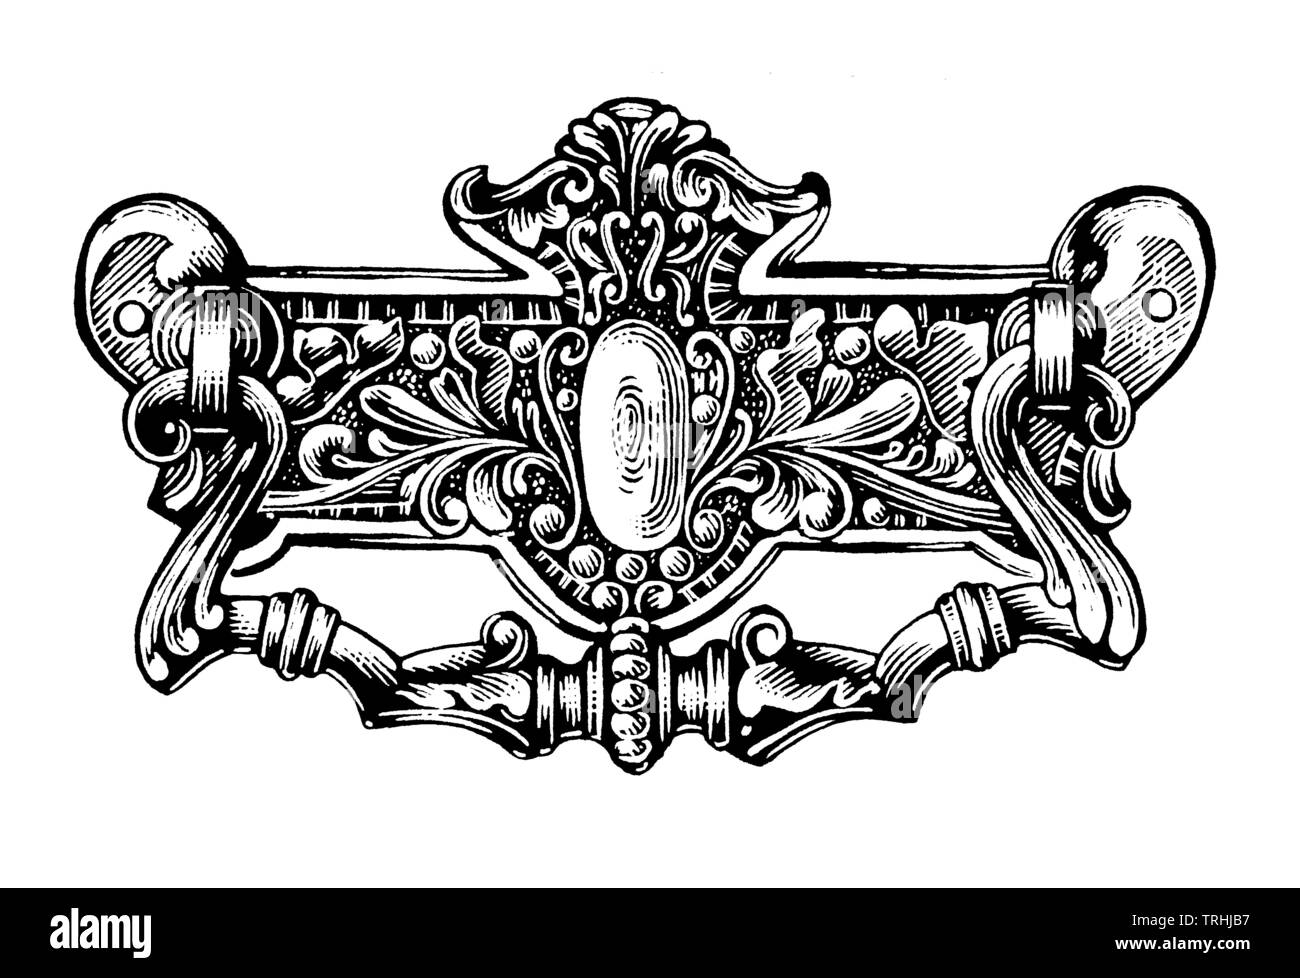 Ornate handle - Stock Image